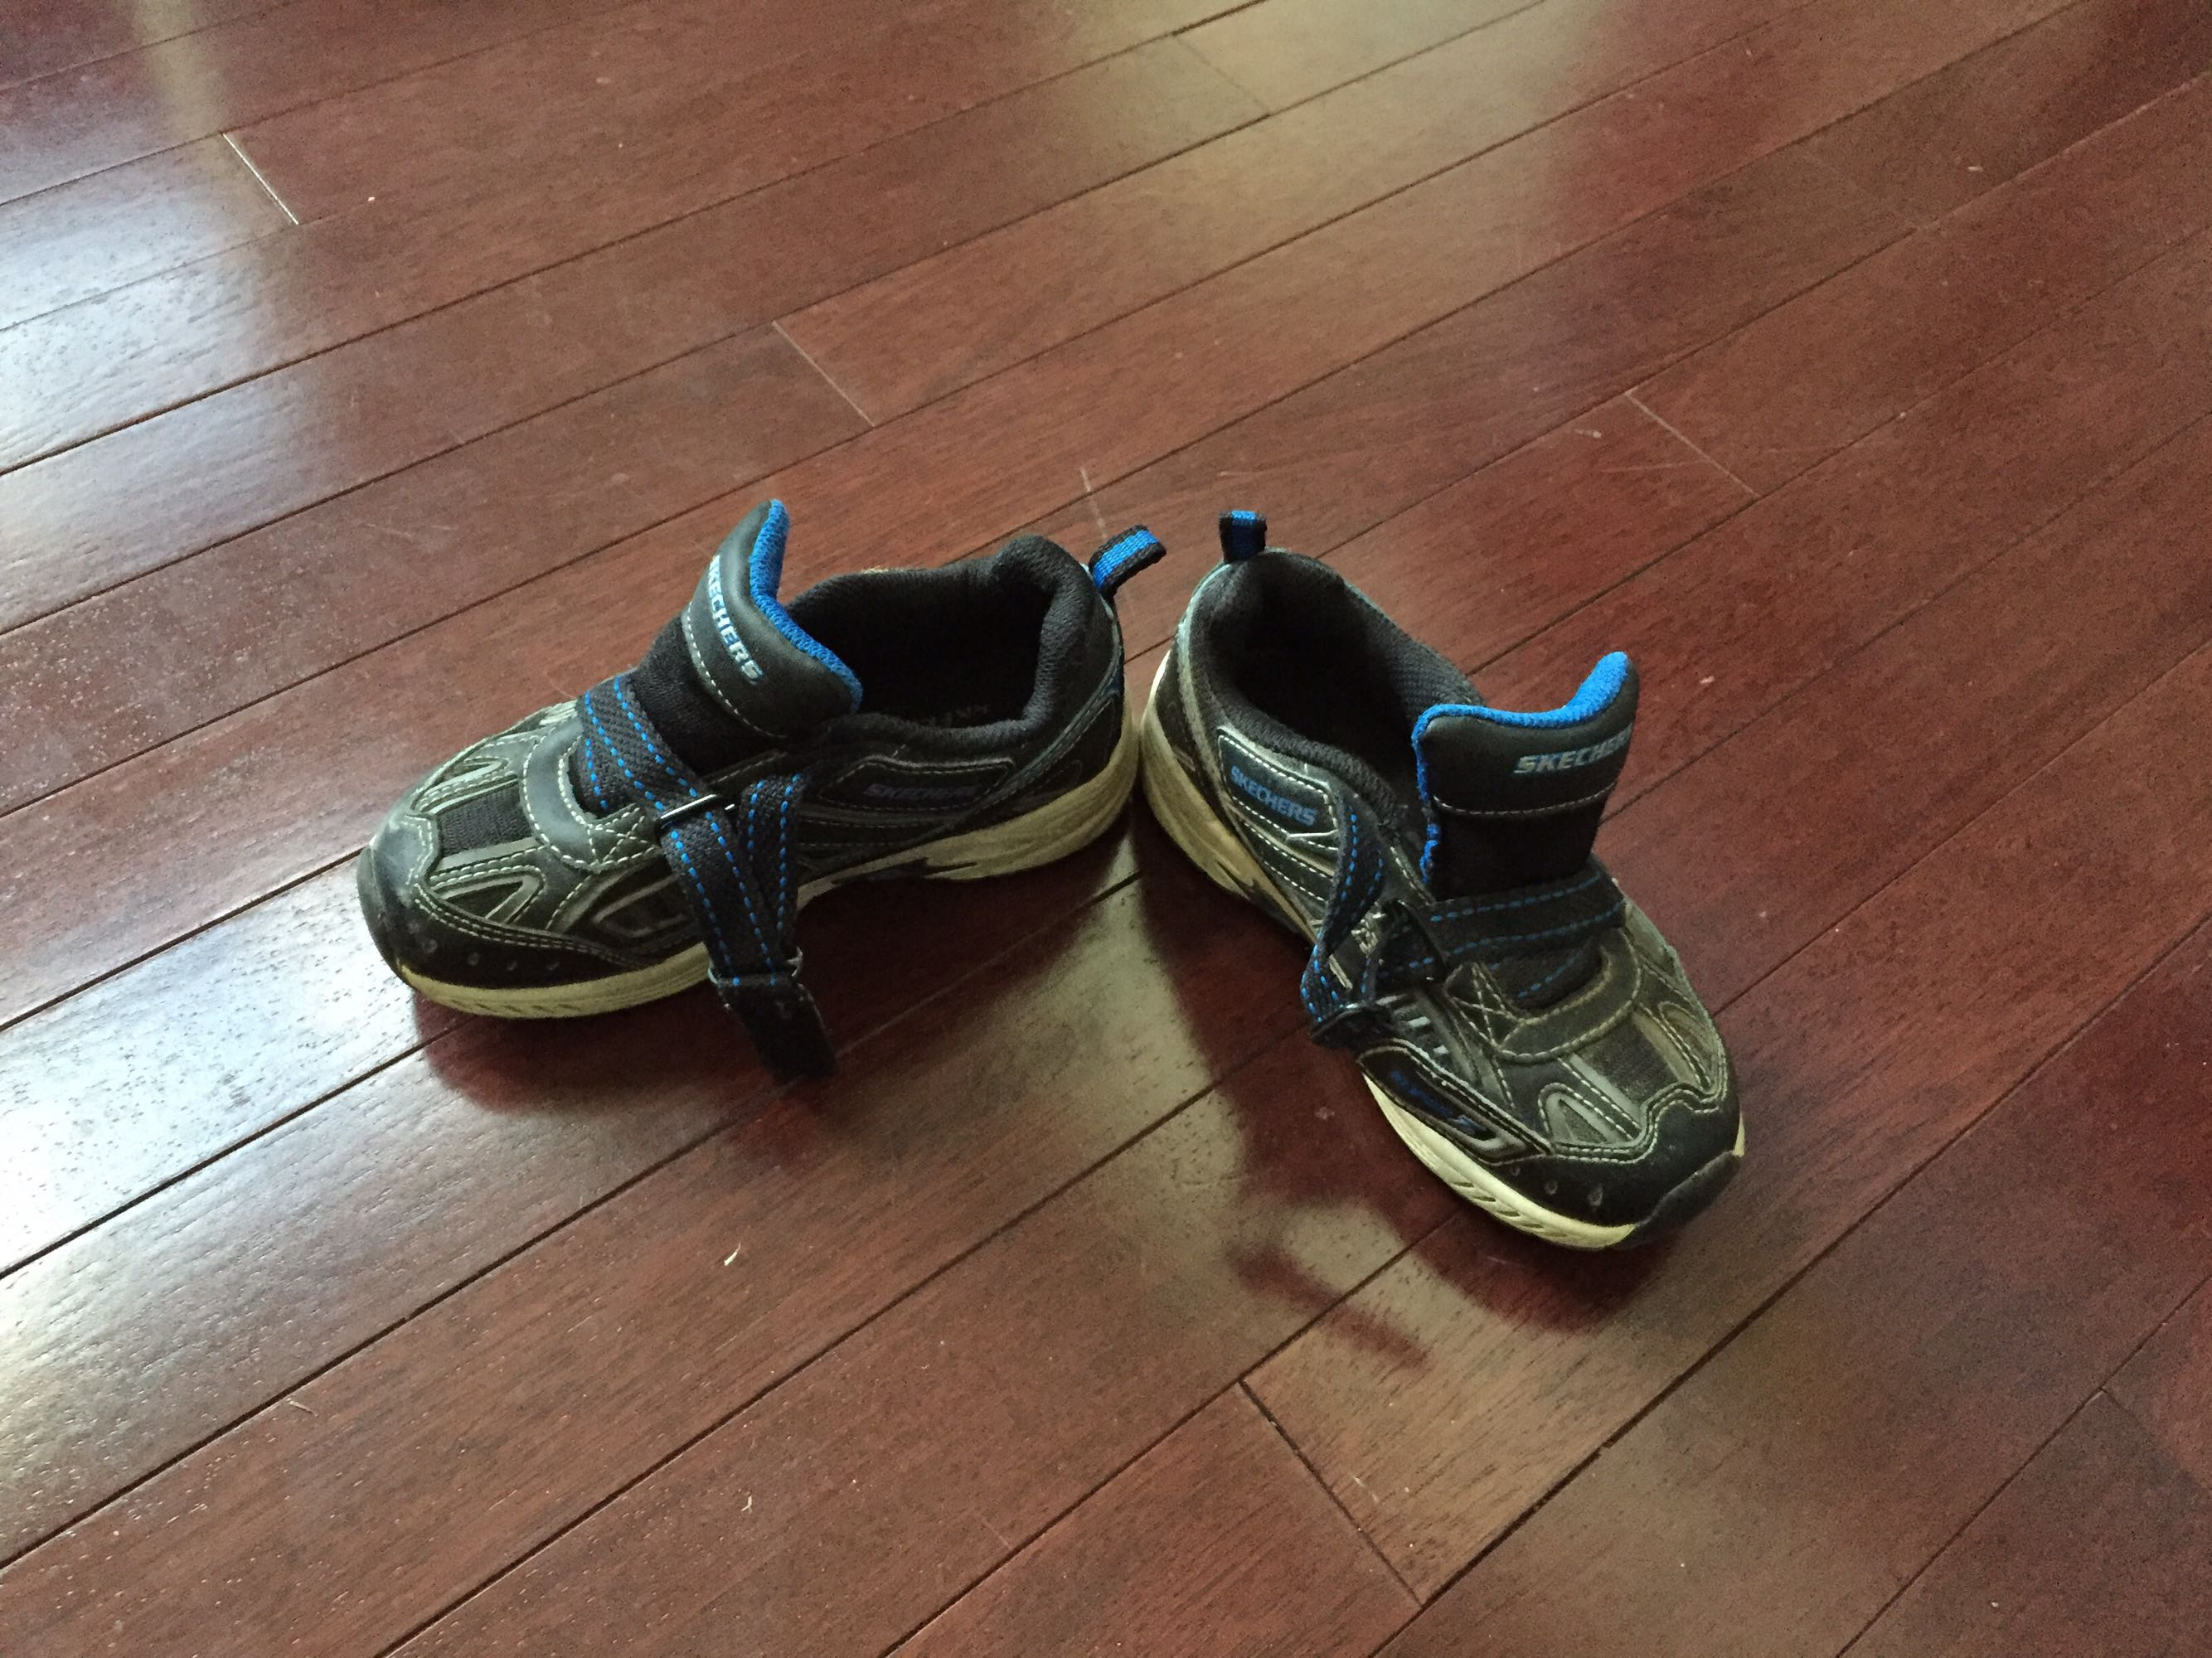 Size 9 sketchers. Used condition.